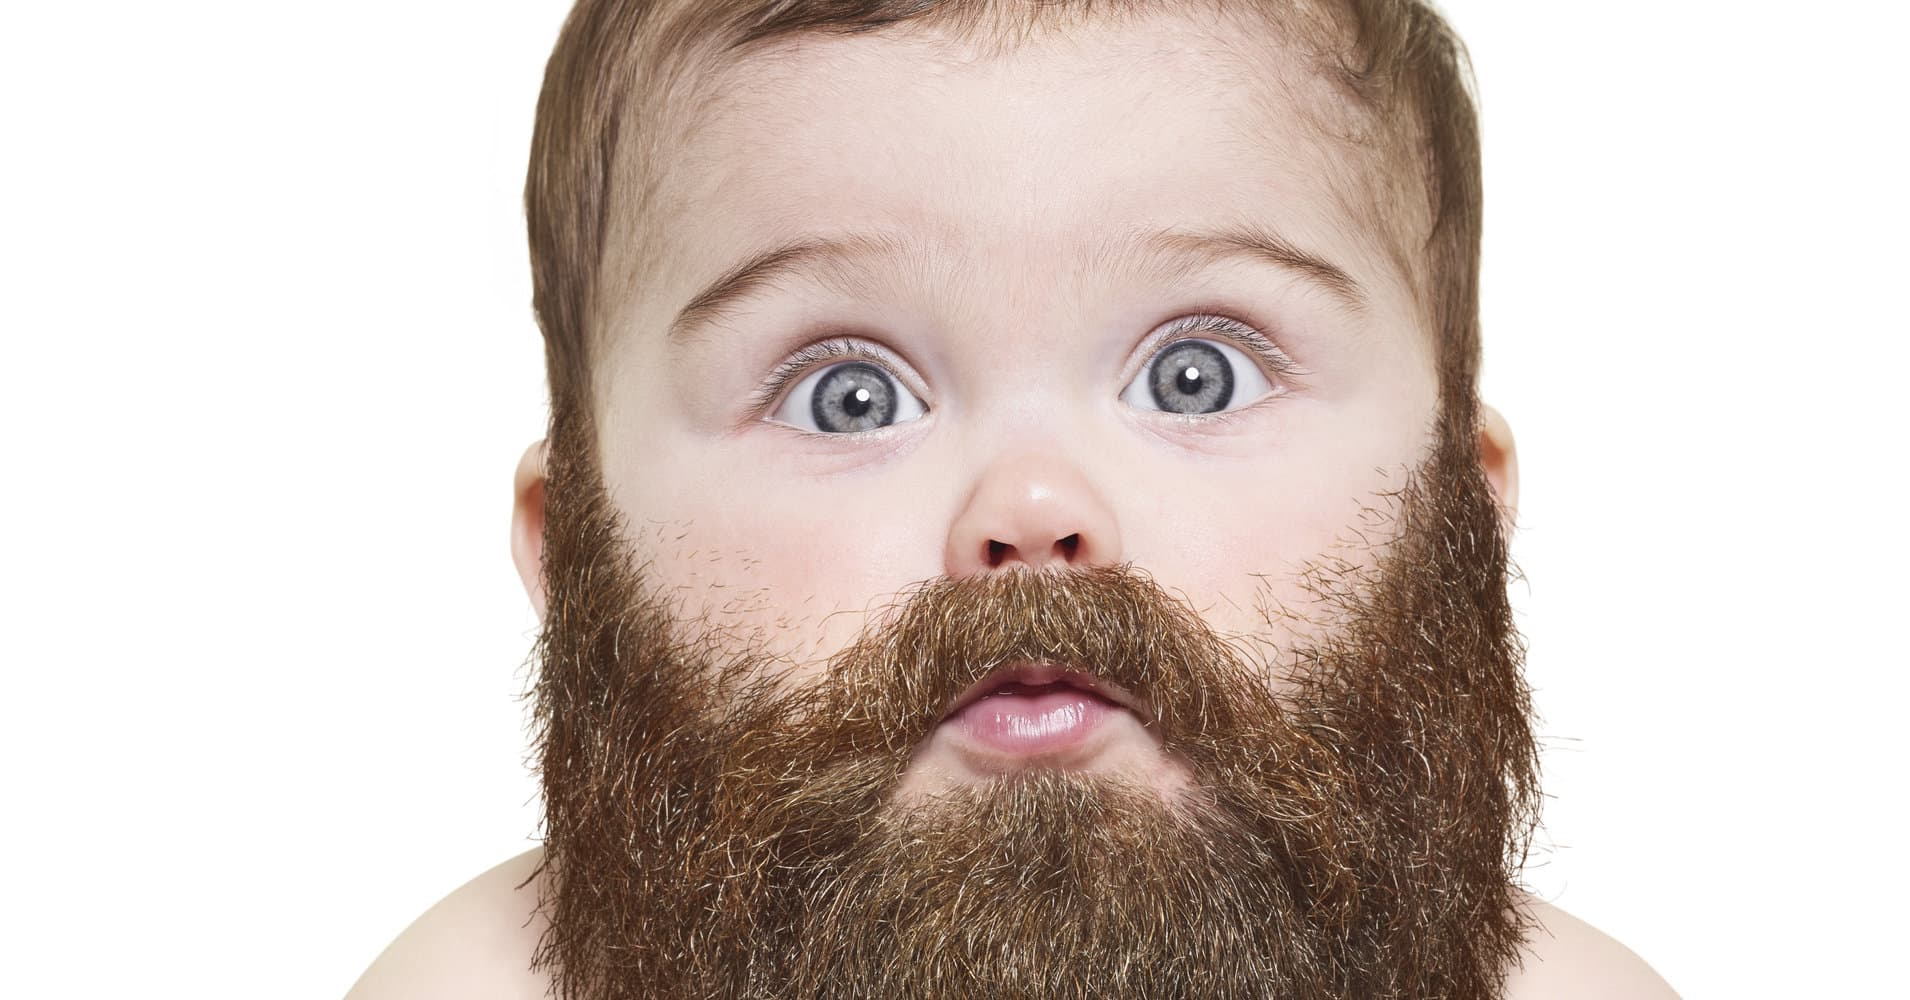 baby born with beard photo - 1